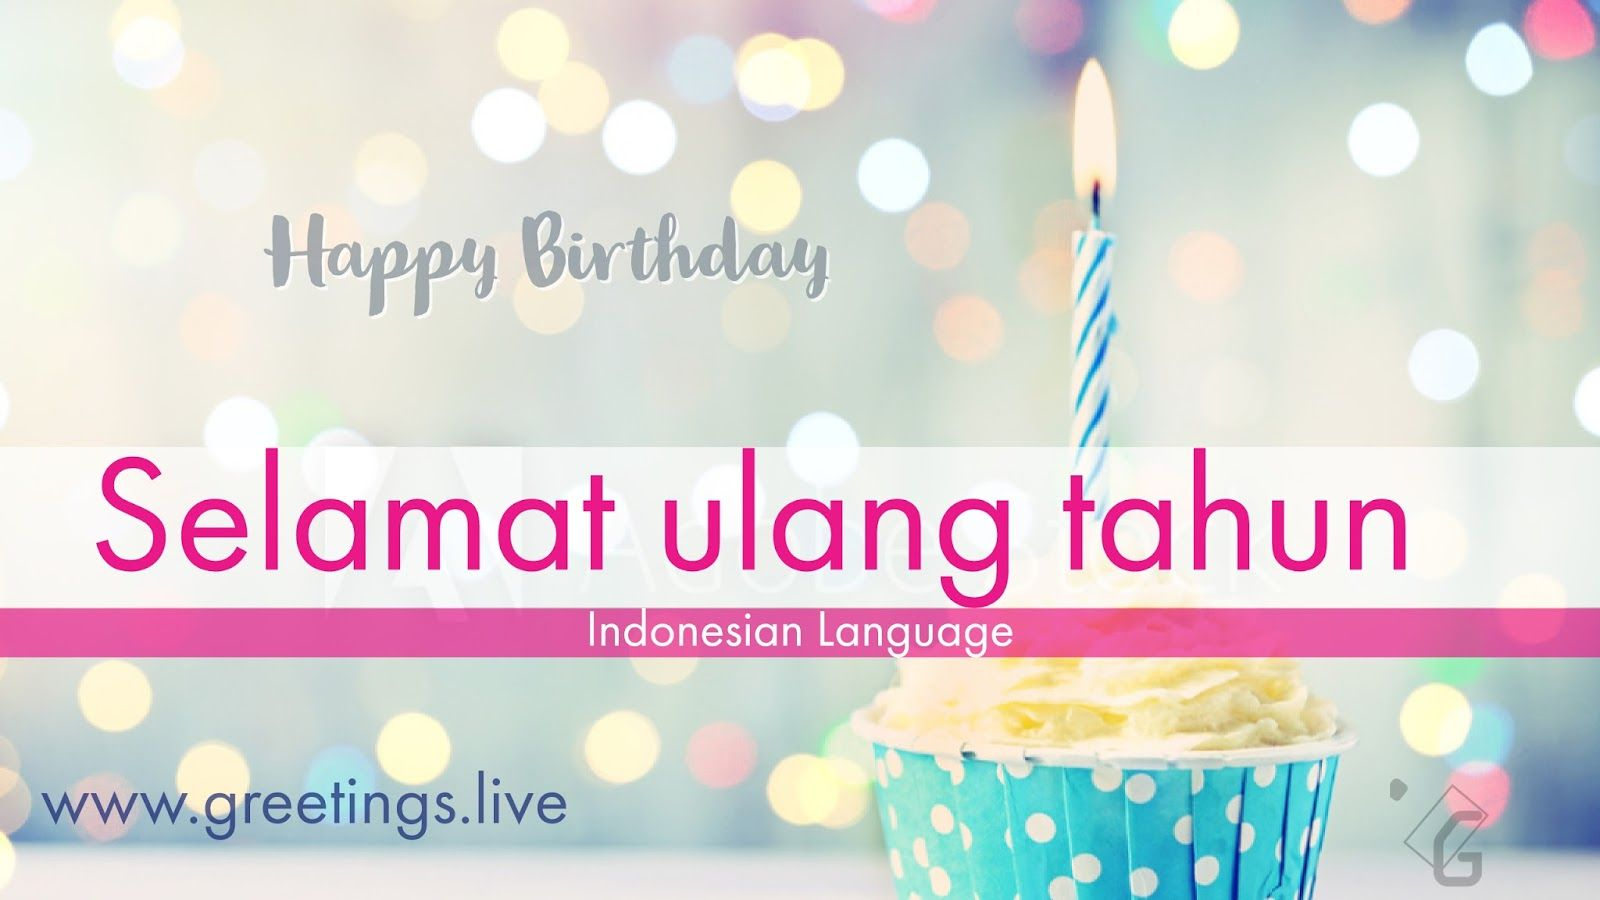 Happy birthday in indonesian language hd greetings pinterest happy birthday wishes in indonesian m4hsunfo